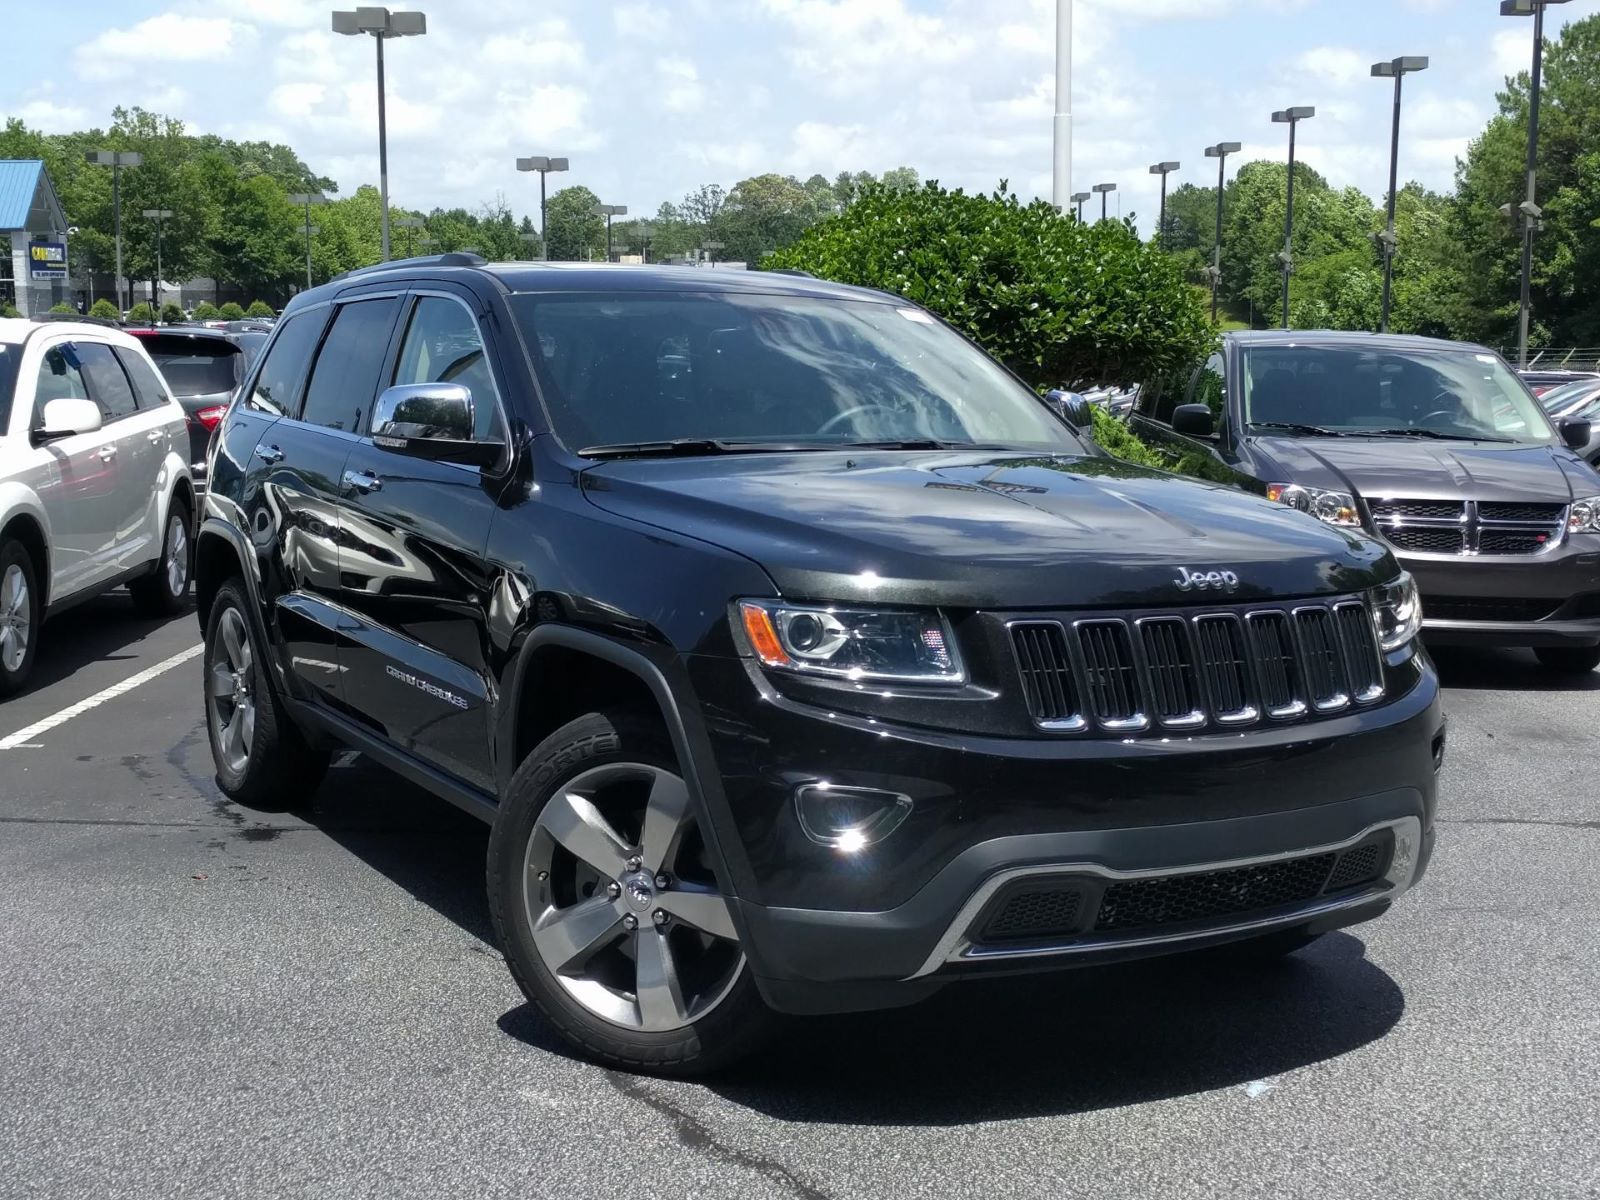 Used 2014 Jeep Grand Cherokee In Norcross Georgia Carmax 2014